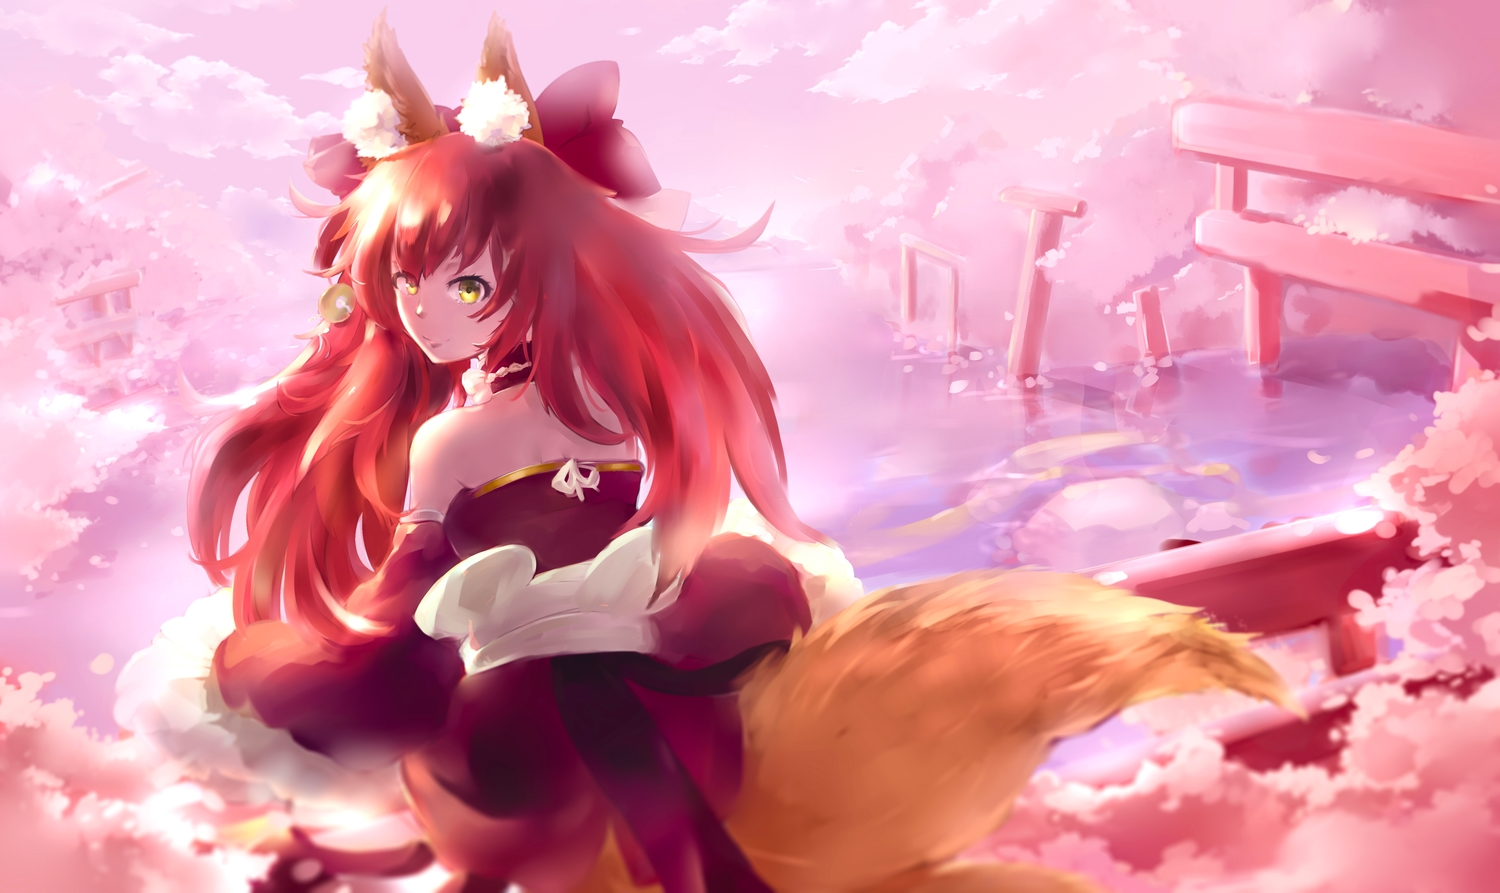 animal_ears bow fate/extra fate/grand_order fate_(series) foxgirl japanese_clothes long_hair mochigome_(fatelly) red_hair ruins tail tamamo_no_mae_(fate) tree yellow_eyes